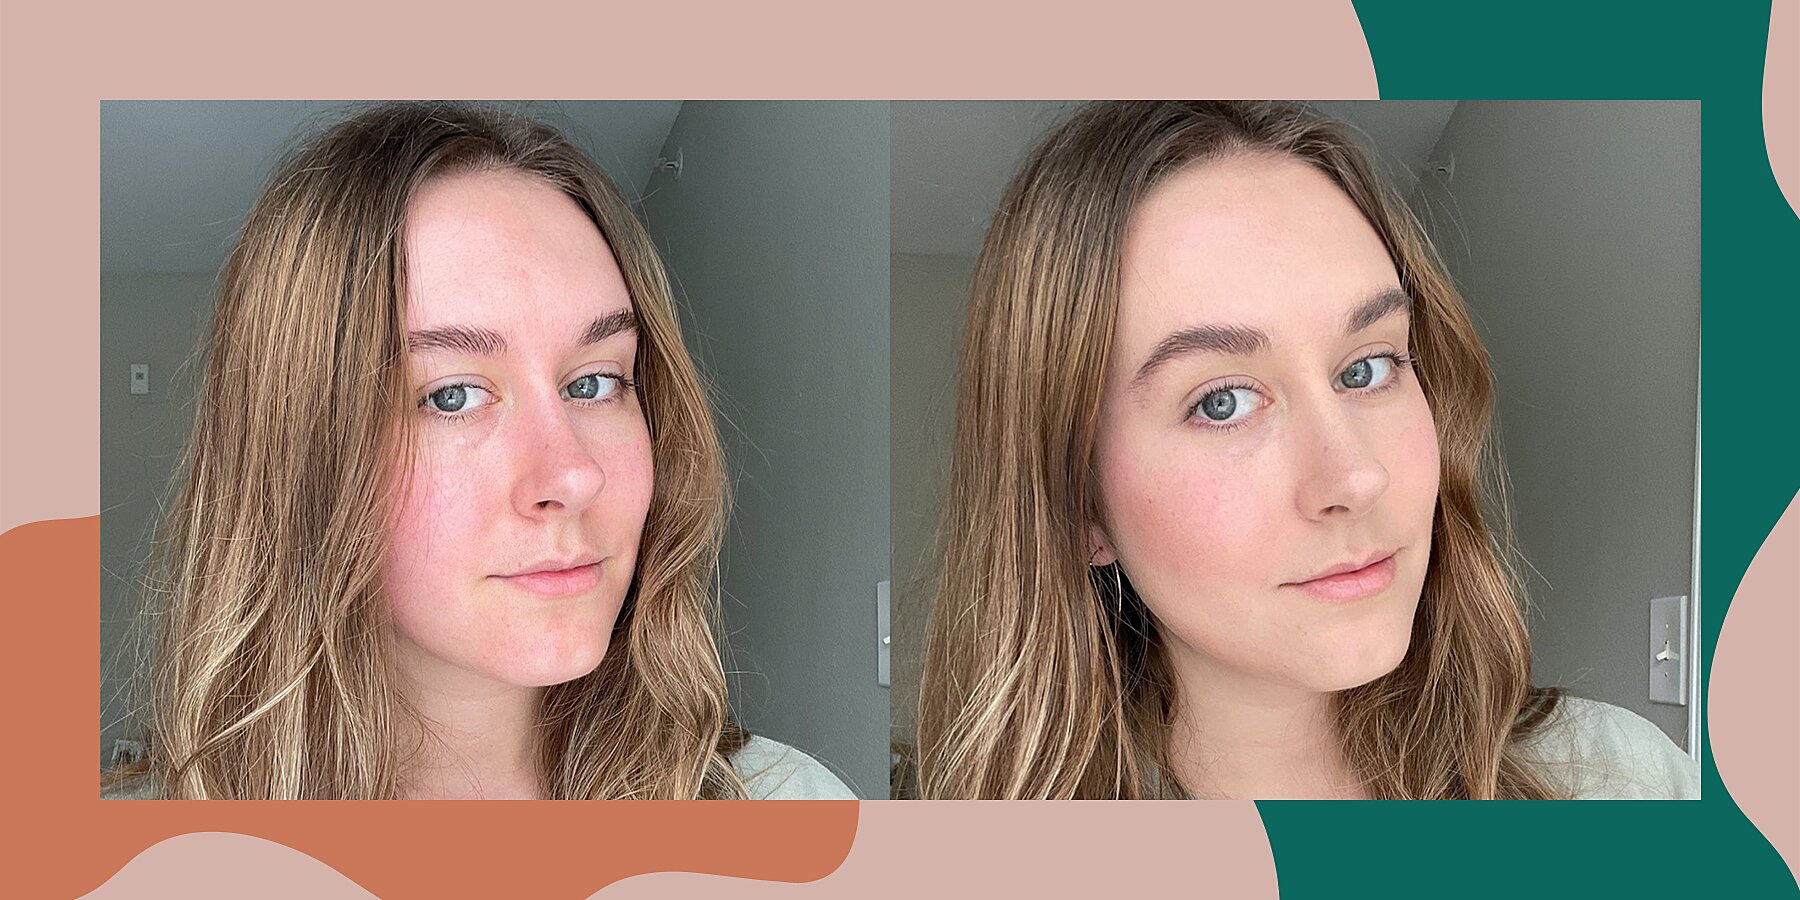 This $15 Powder Foundation Went Viral on TikTok-and Now I'm Hooked